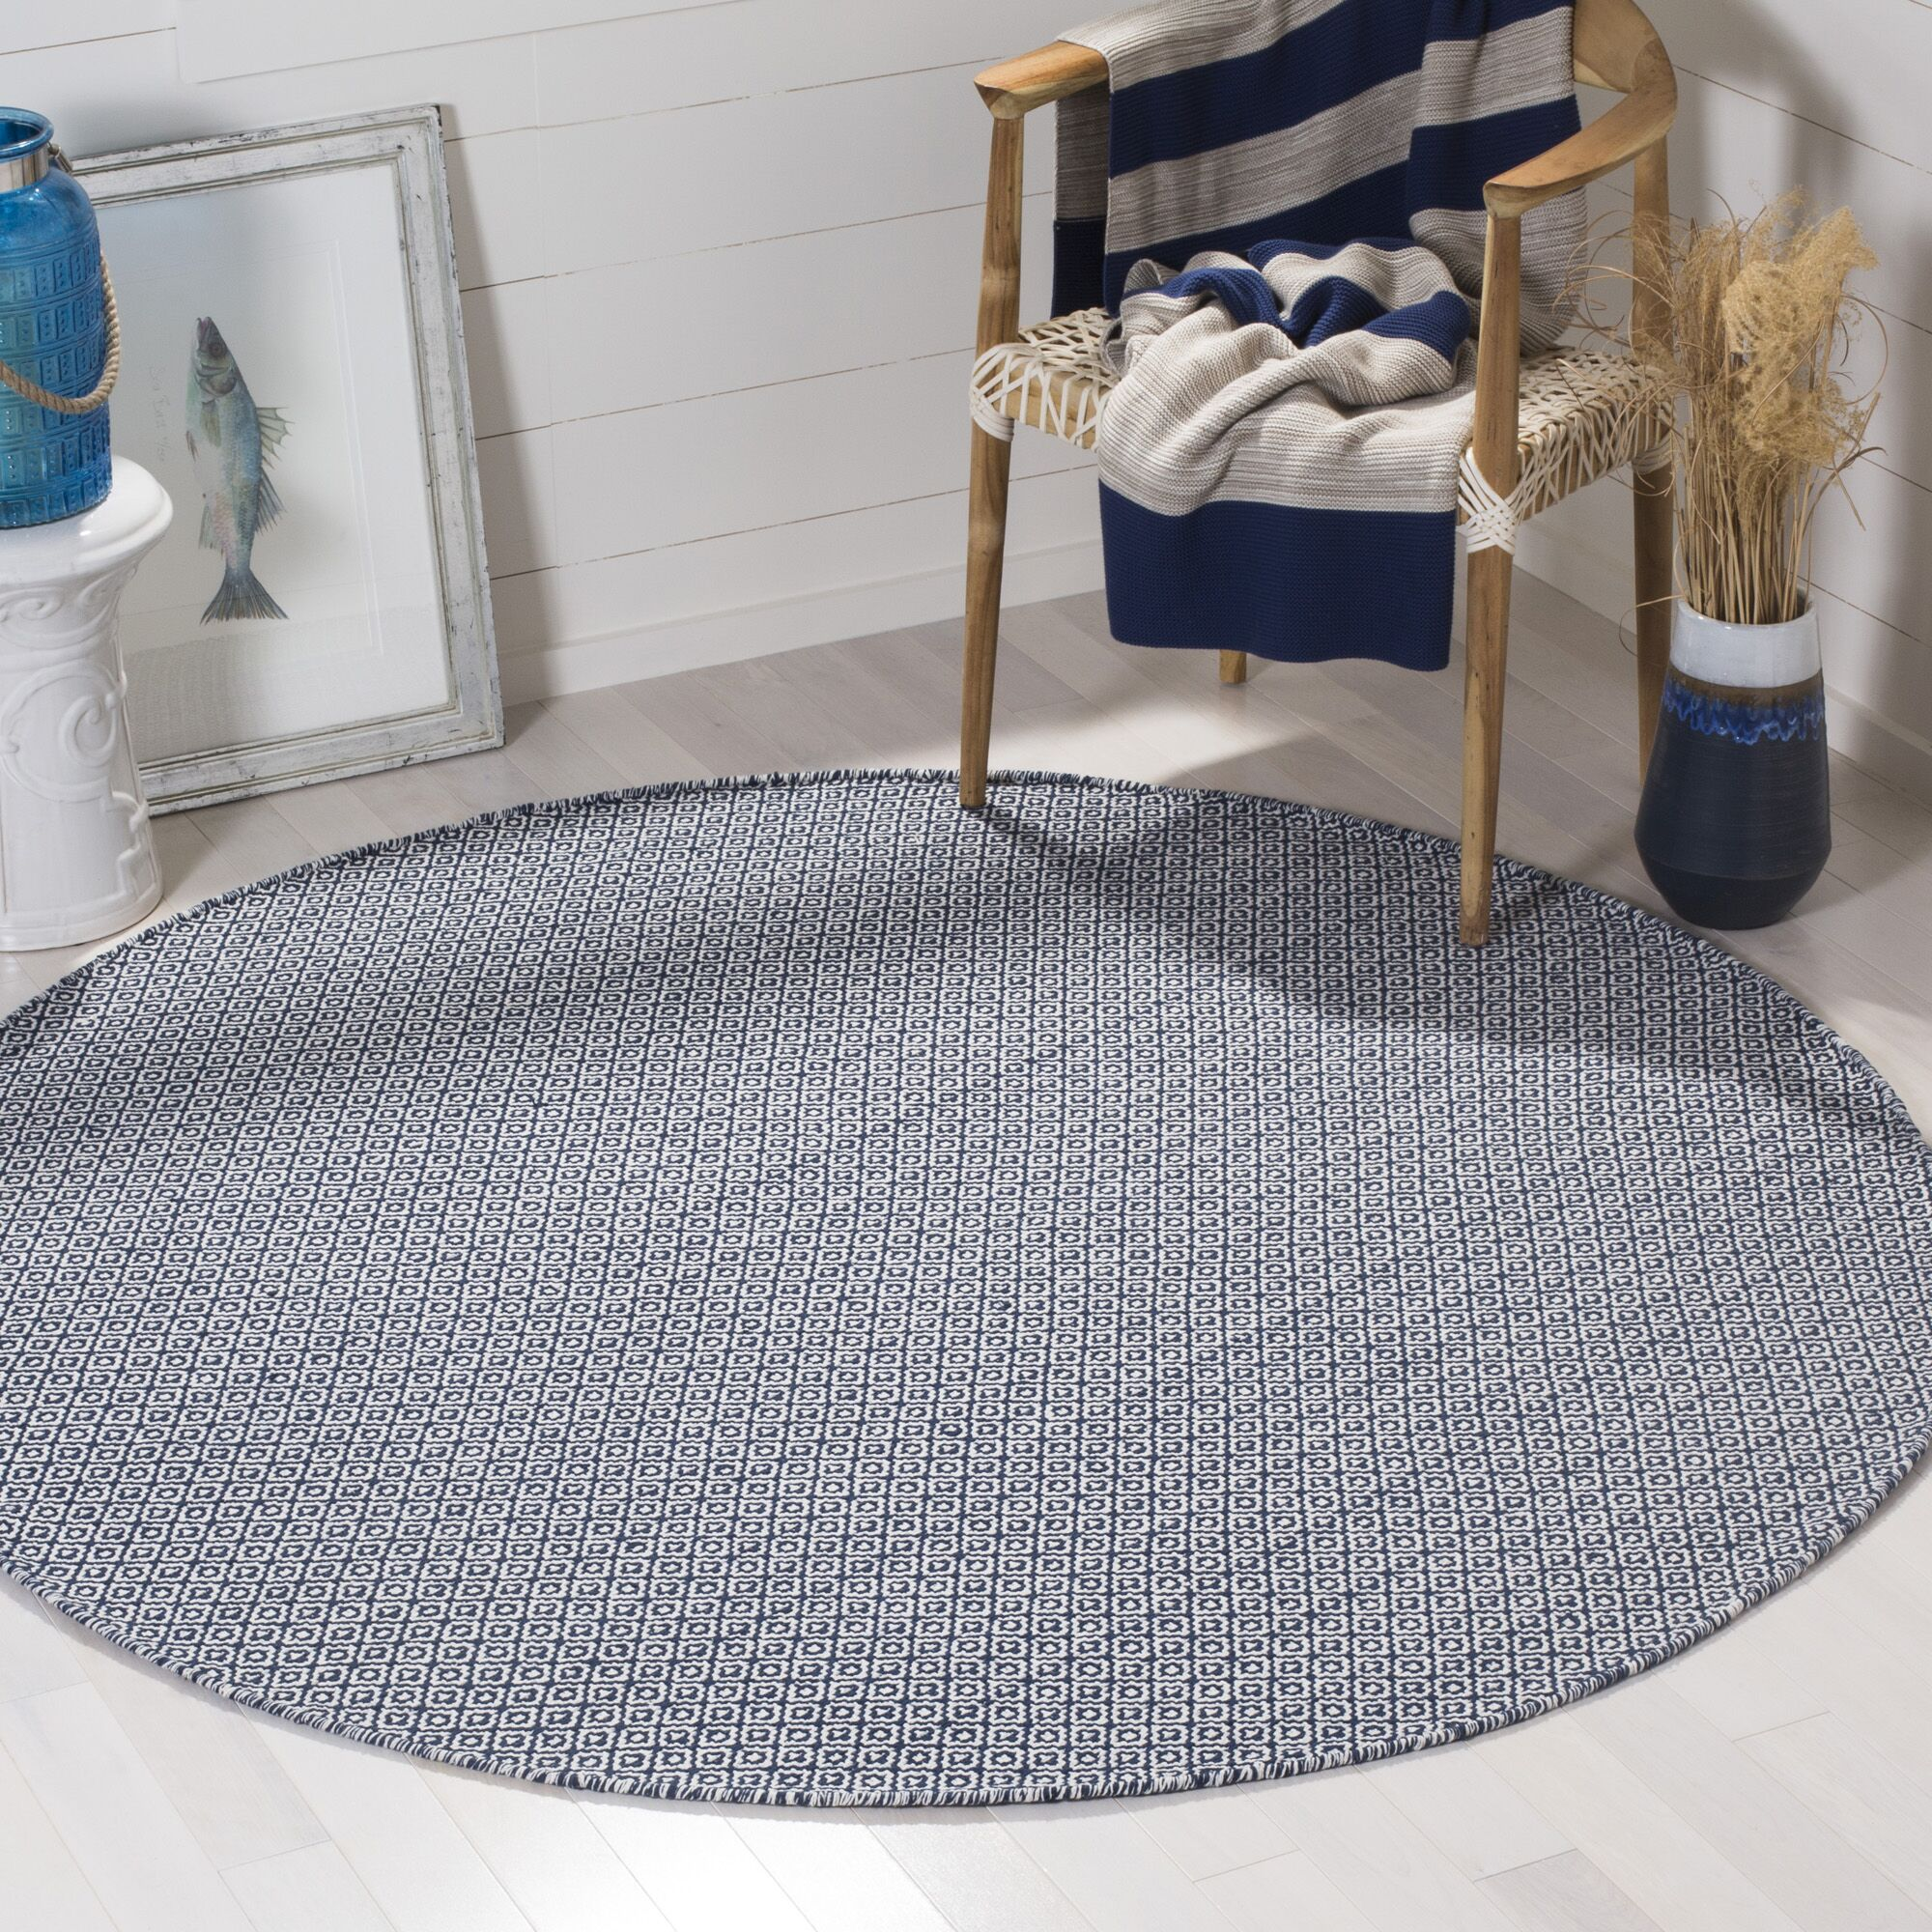 Hampden Hand-Woven Cotton Ivory/Navy Blue Area Rug Rug Size: Round 6'